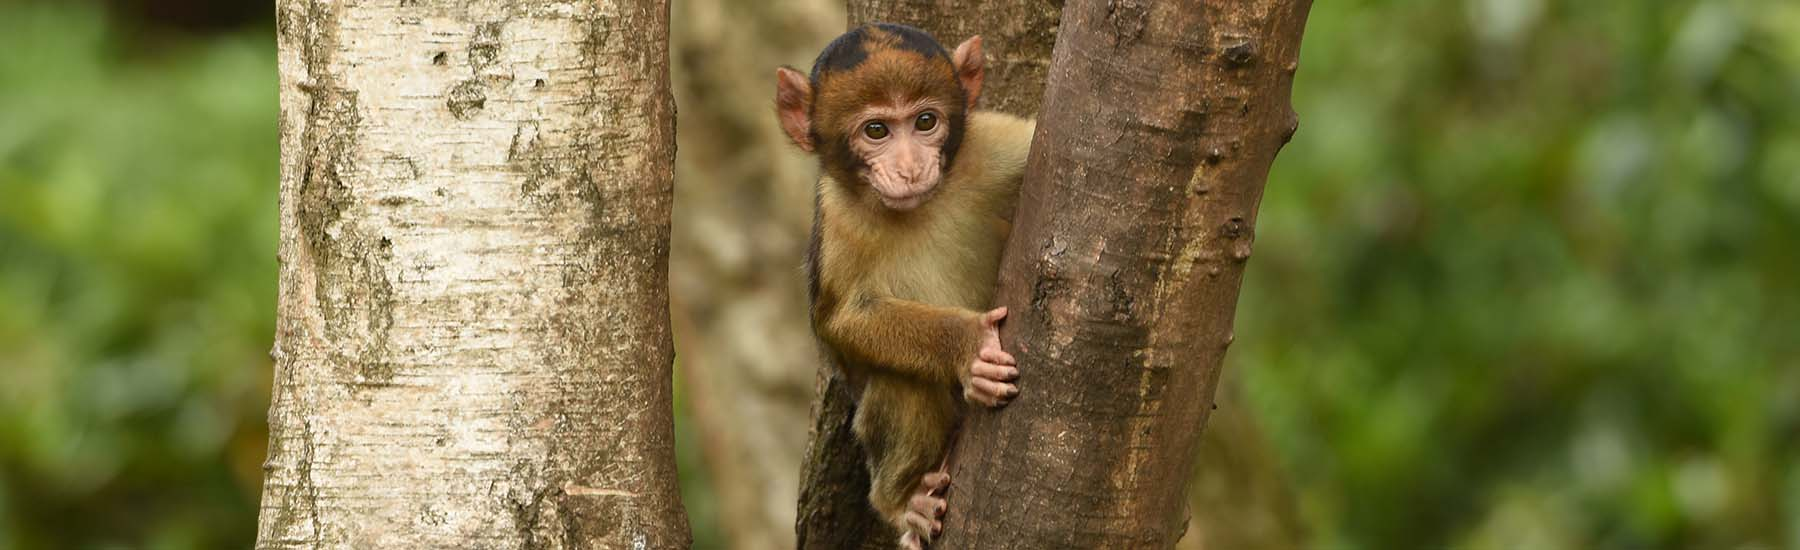 No Trick or Treating This Year? Enter Monkey Forest's Fancy Dress Competition Instead.